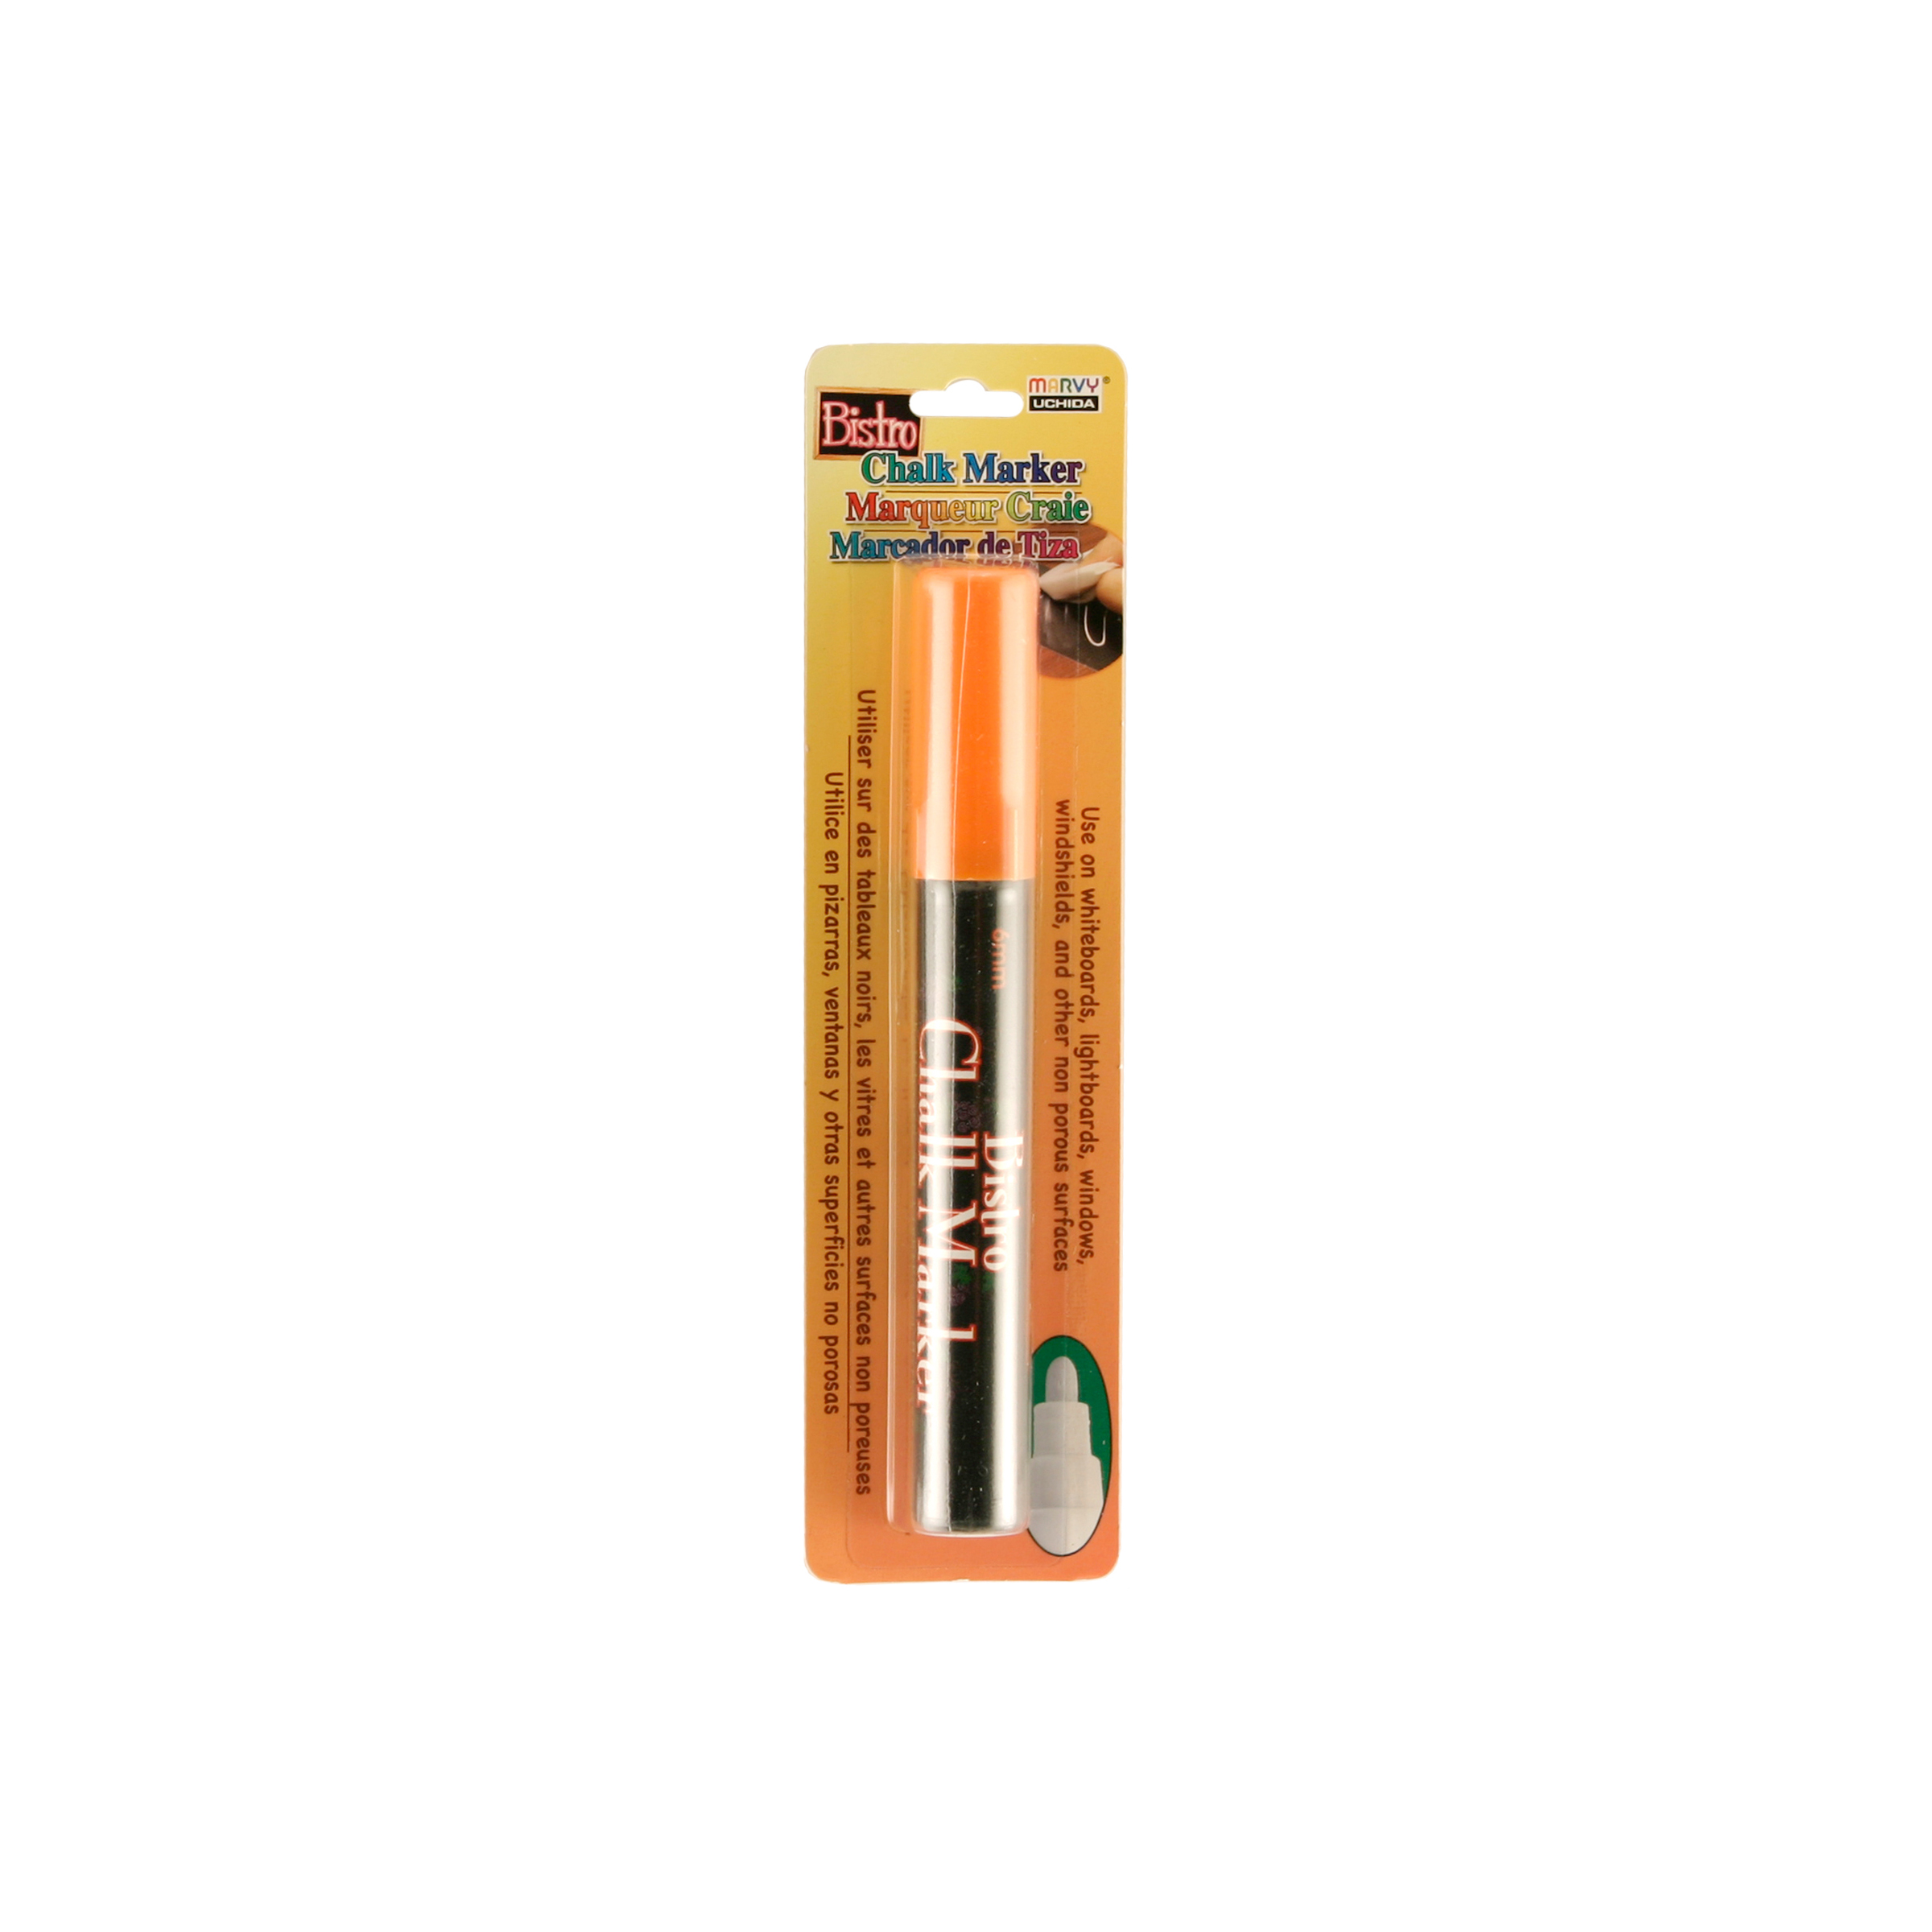 Bistro Chalk Marker 6mm Bullet Tip 1/Pkg-White, Fluorescent Orange